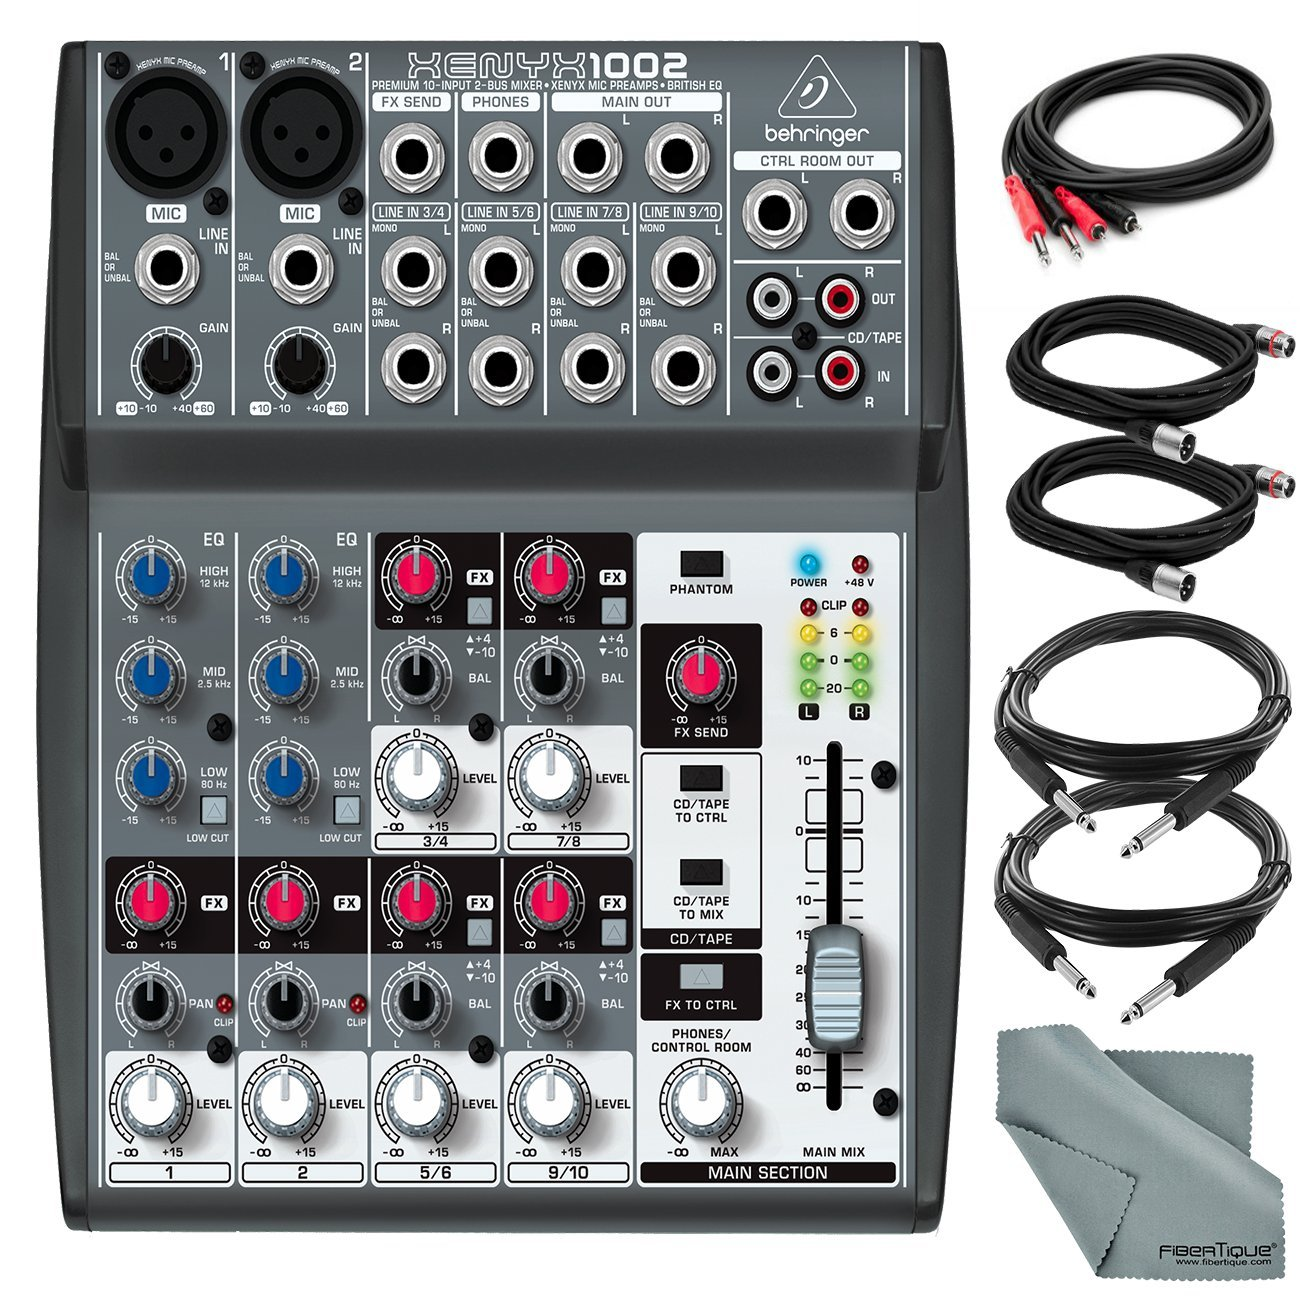 Behringer XENYX 1002 - 10 Channel Audio Mixer and Accessory Bundle w/ 5X Cables + Fibertique Cloth by Photo Savings